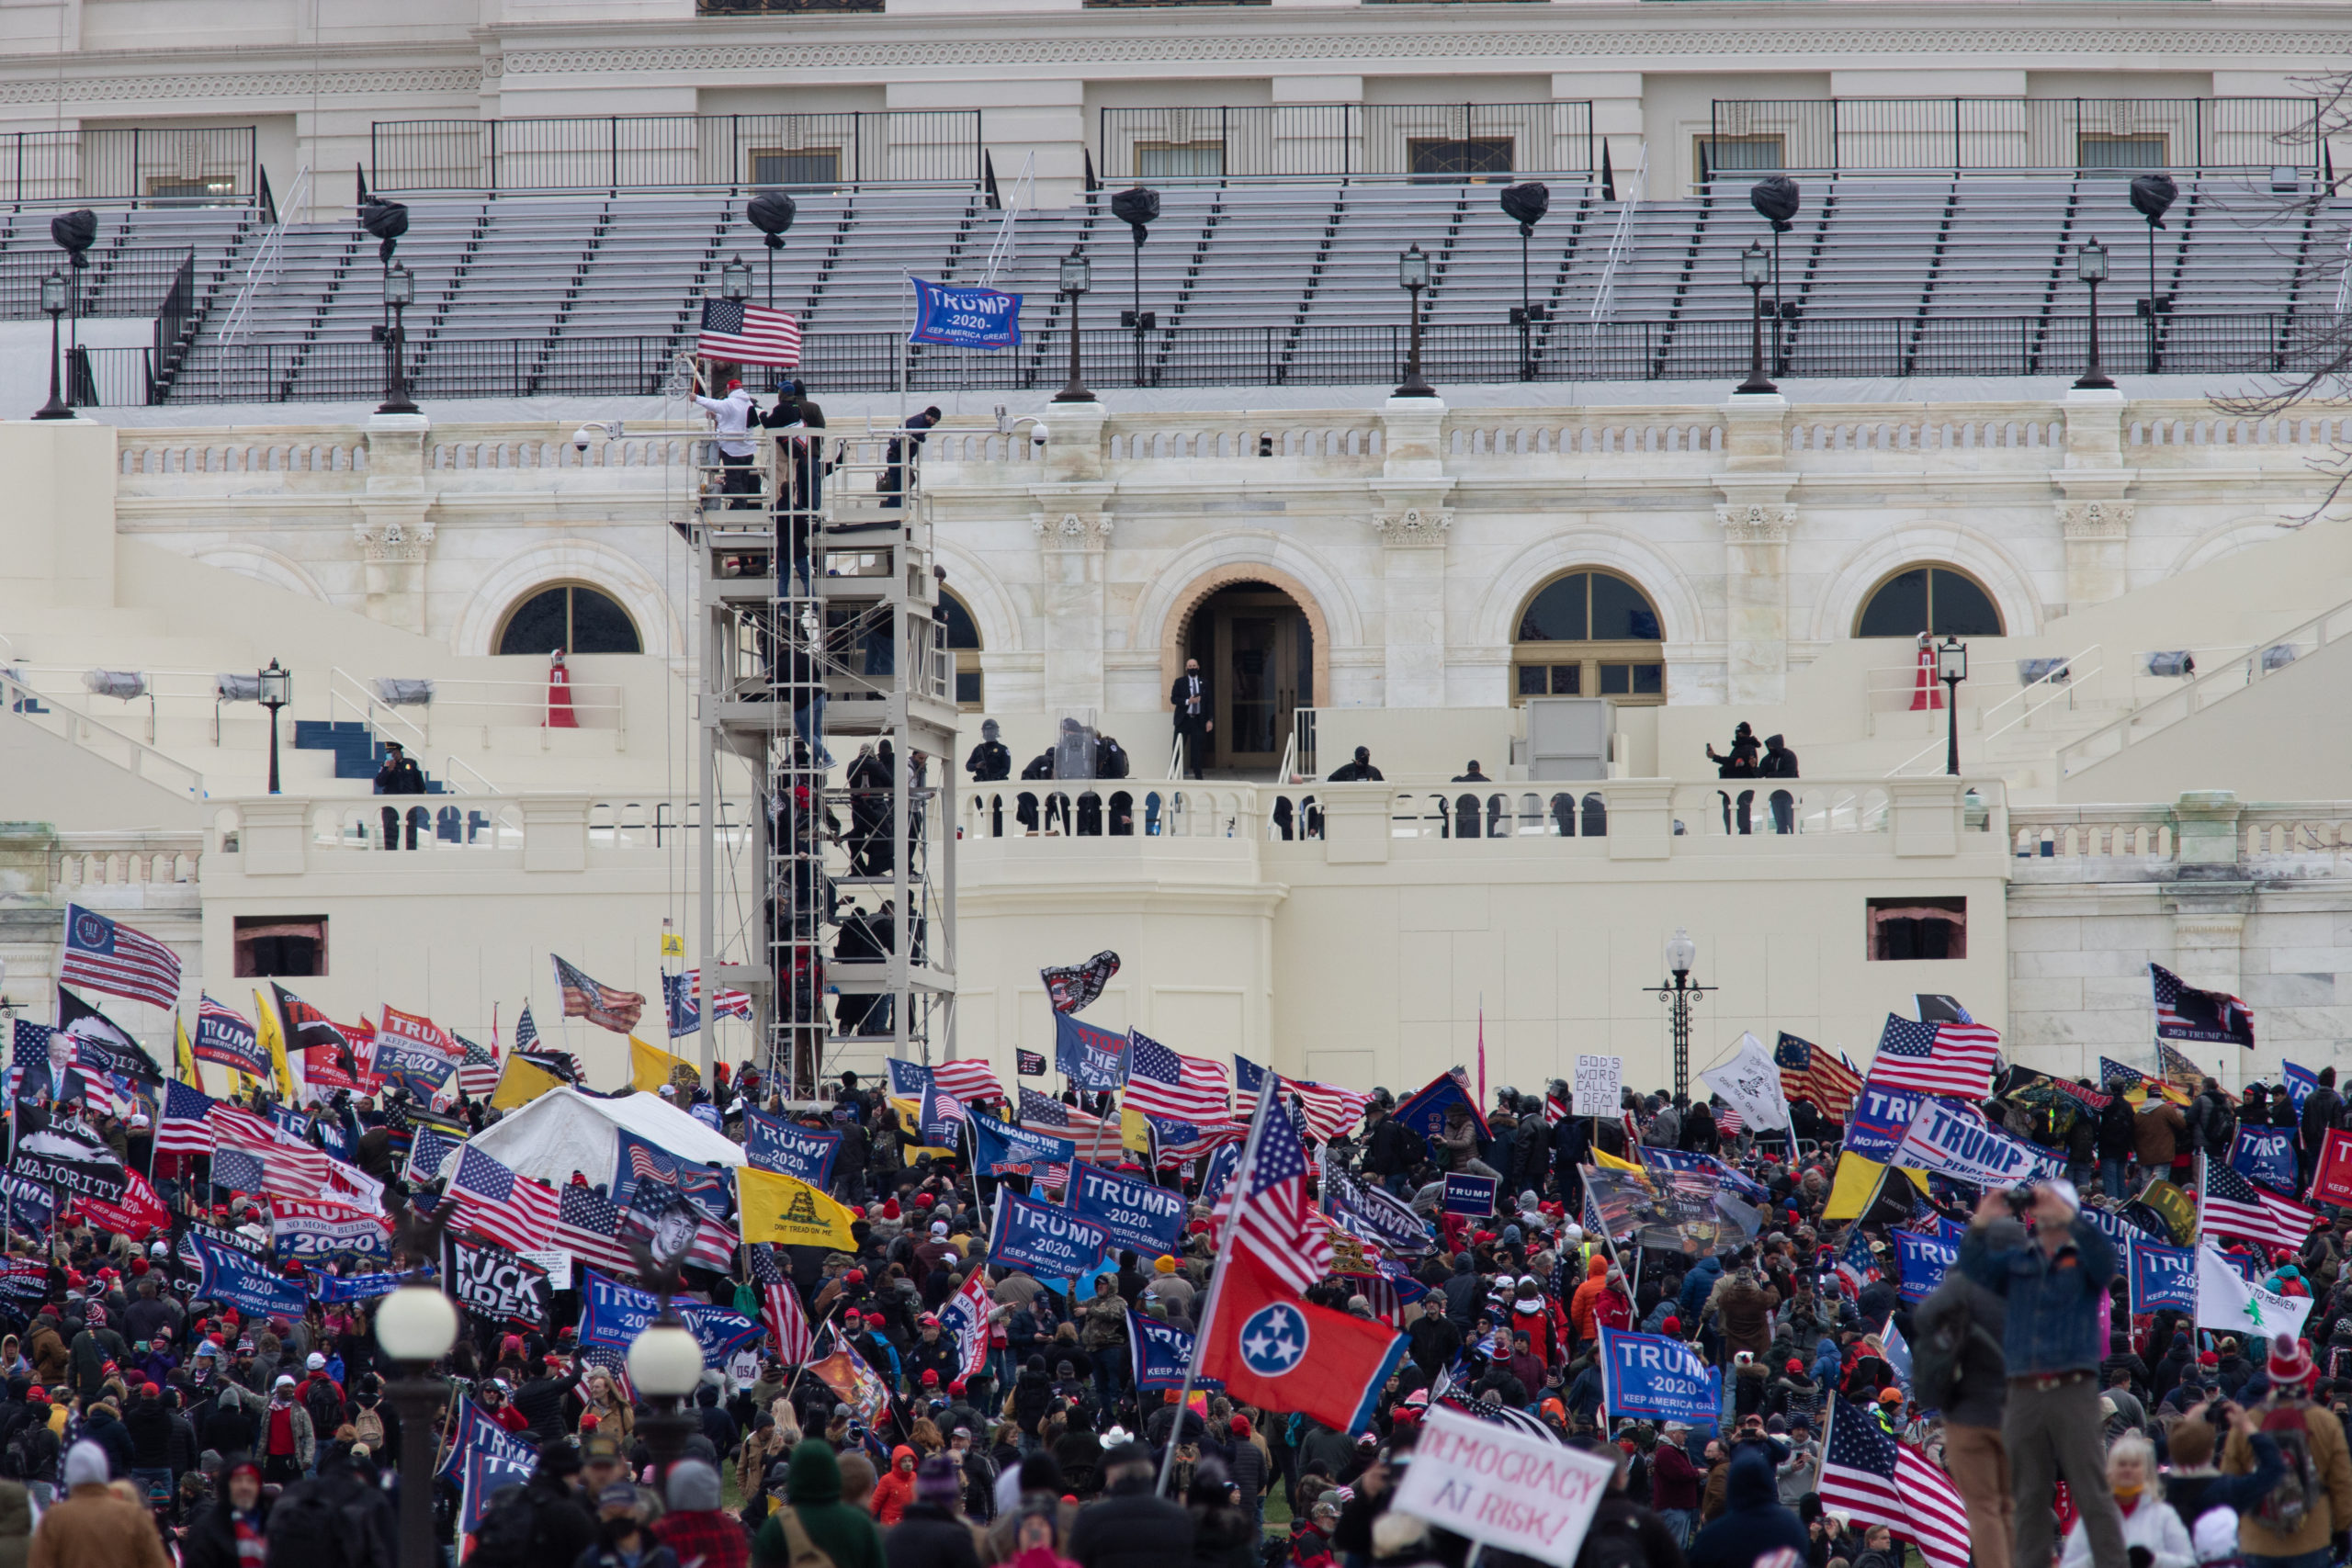 A large crowd of Trump supporters is pictured outside of the U.S. Capitol on Wednesday. (Kaylee Greenlee/Daily Caller News Foundation)